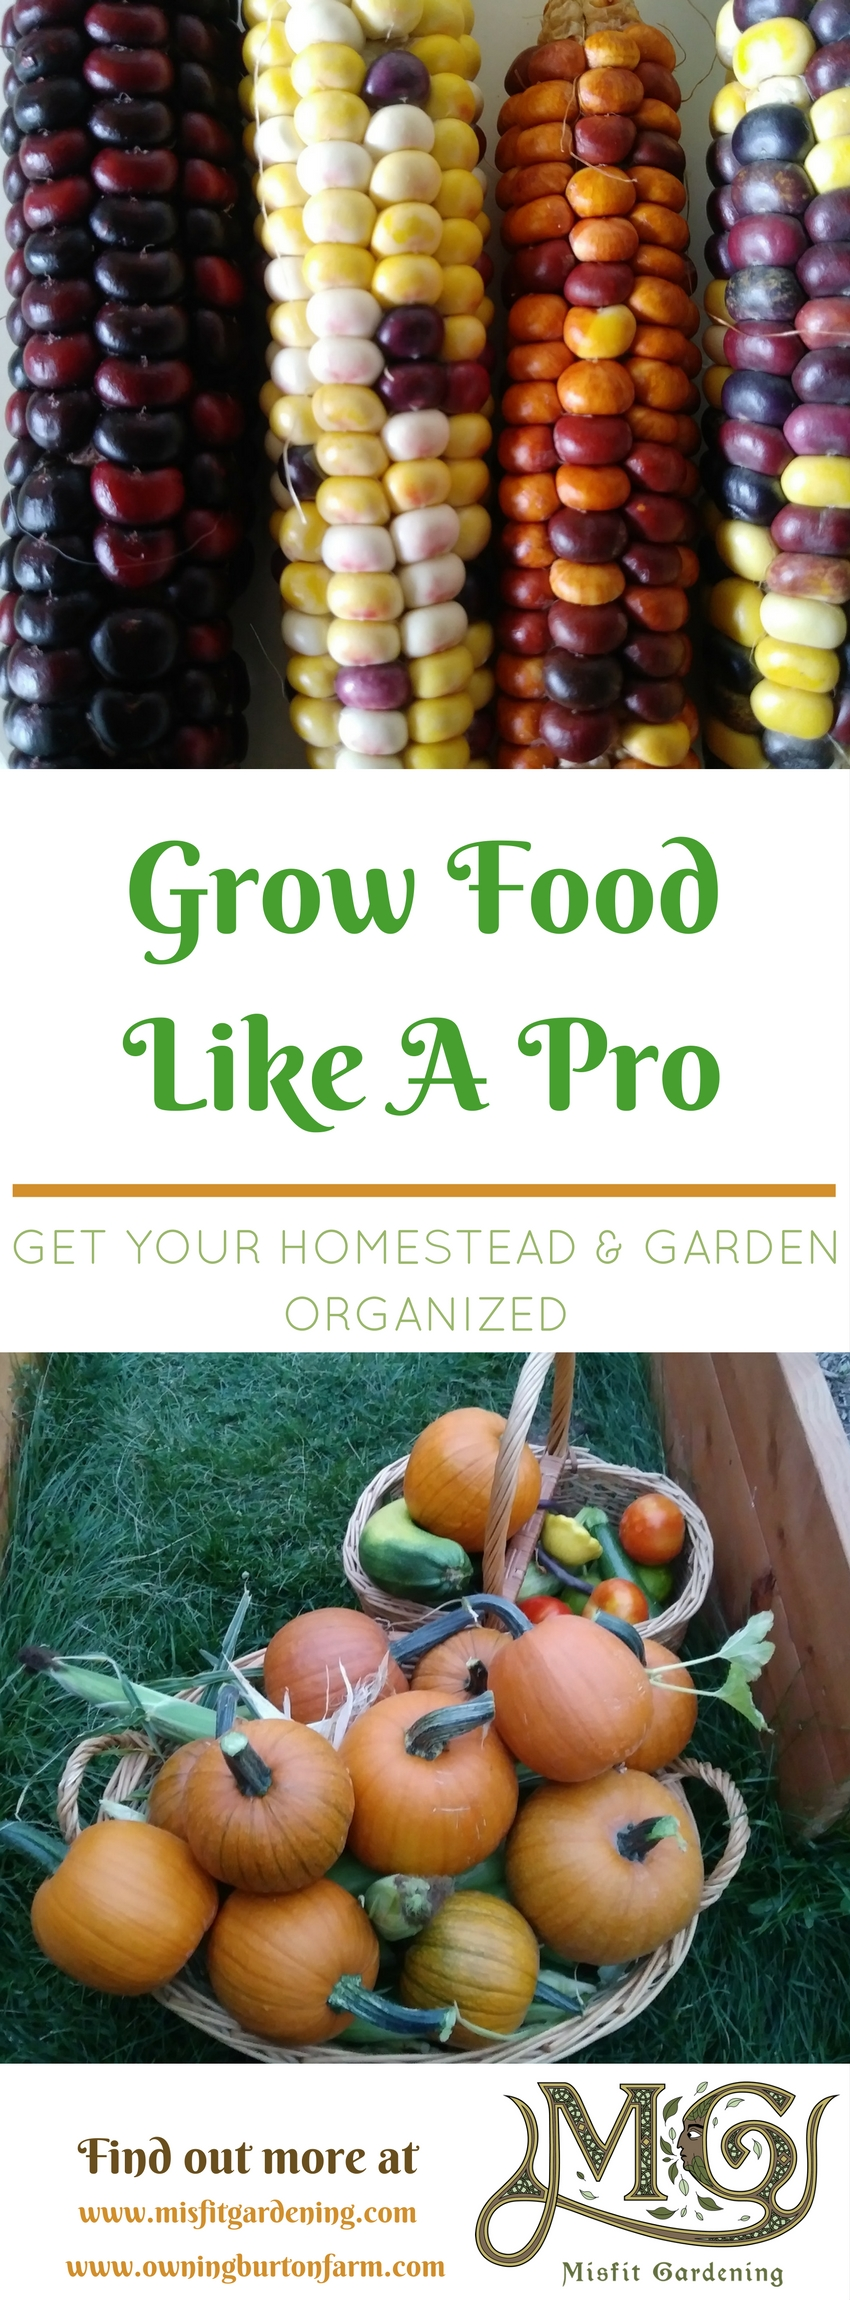 How to get your garden and homestead organized to grow your own food like a pro. Click to find out how to get organized or pin it for later